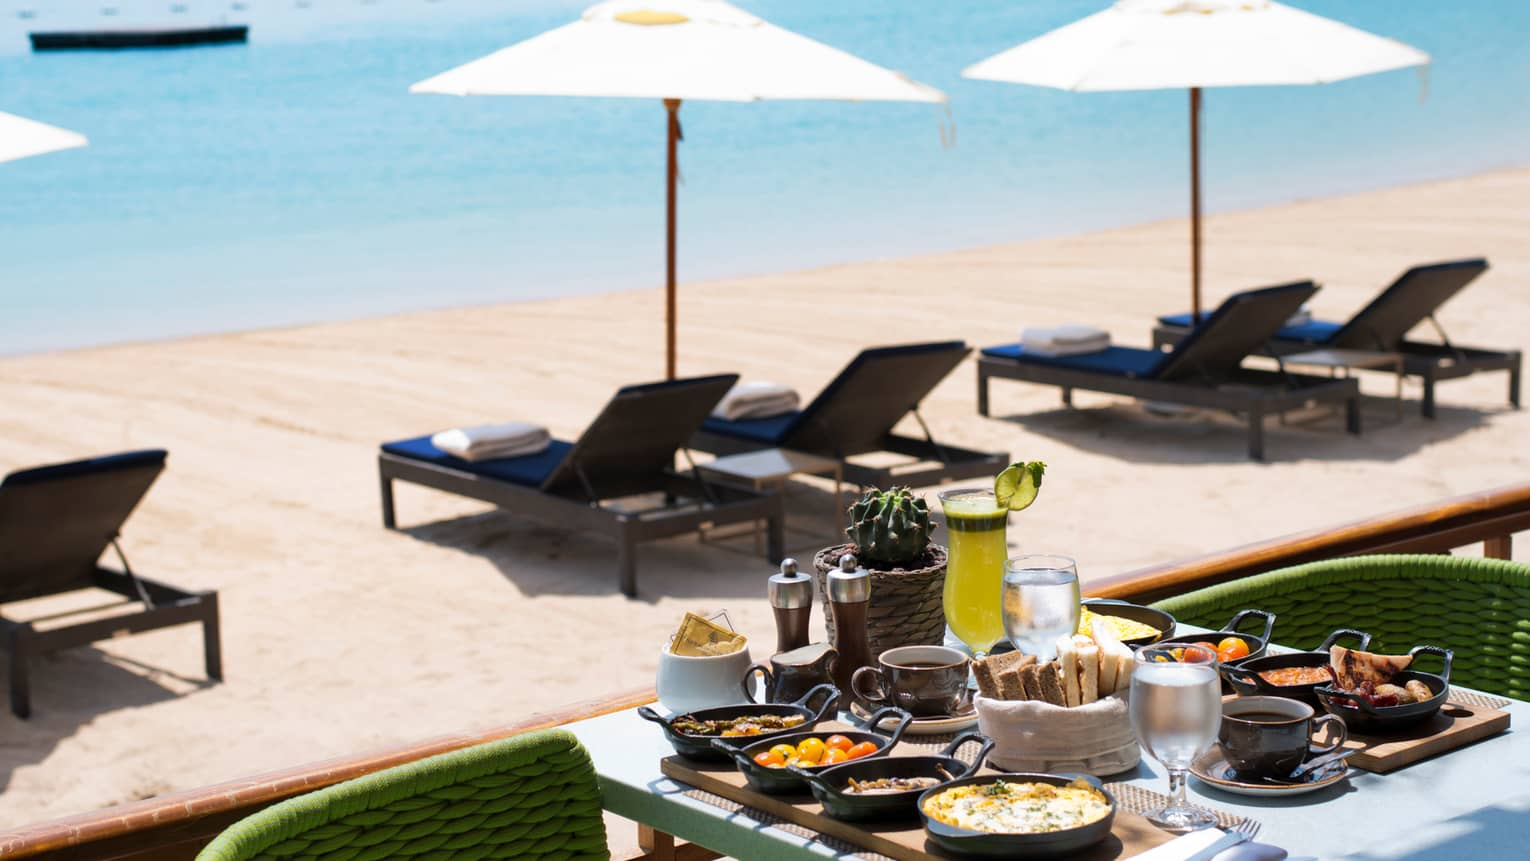 Patio dining table with breakfast items in front of sunny beach, lounge chairs